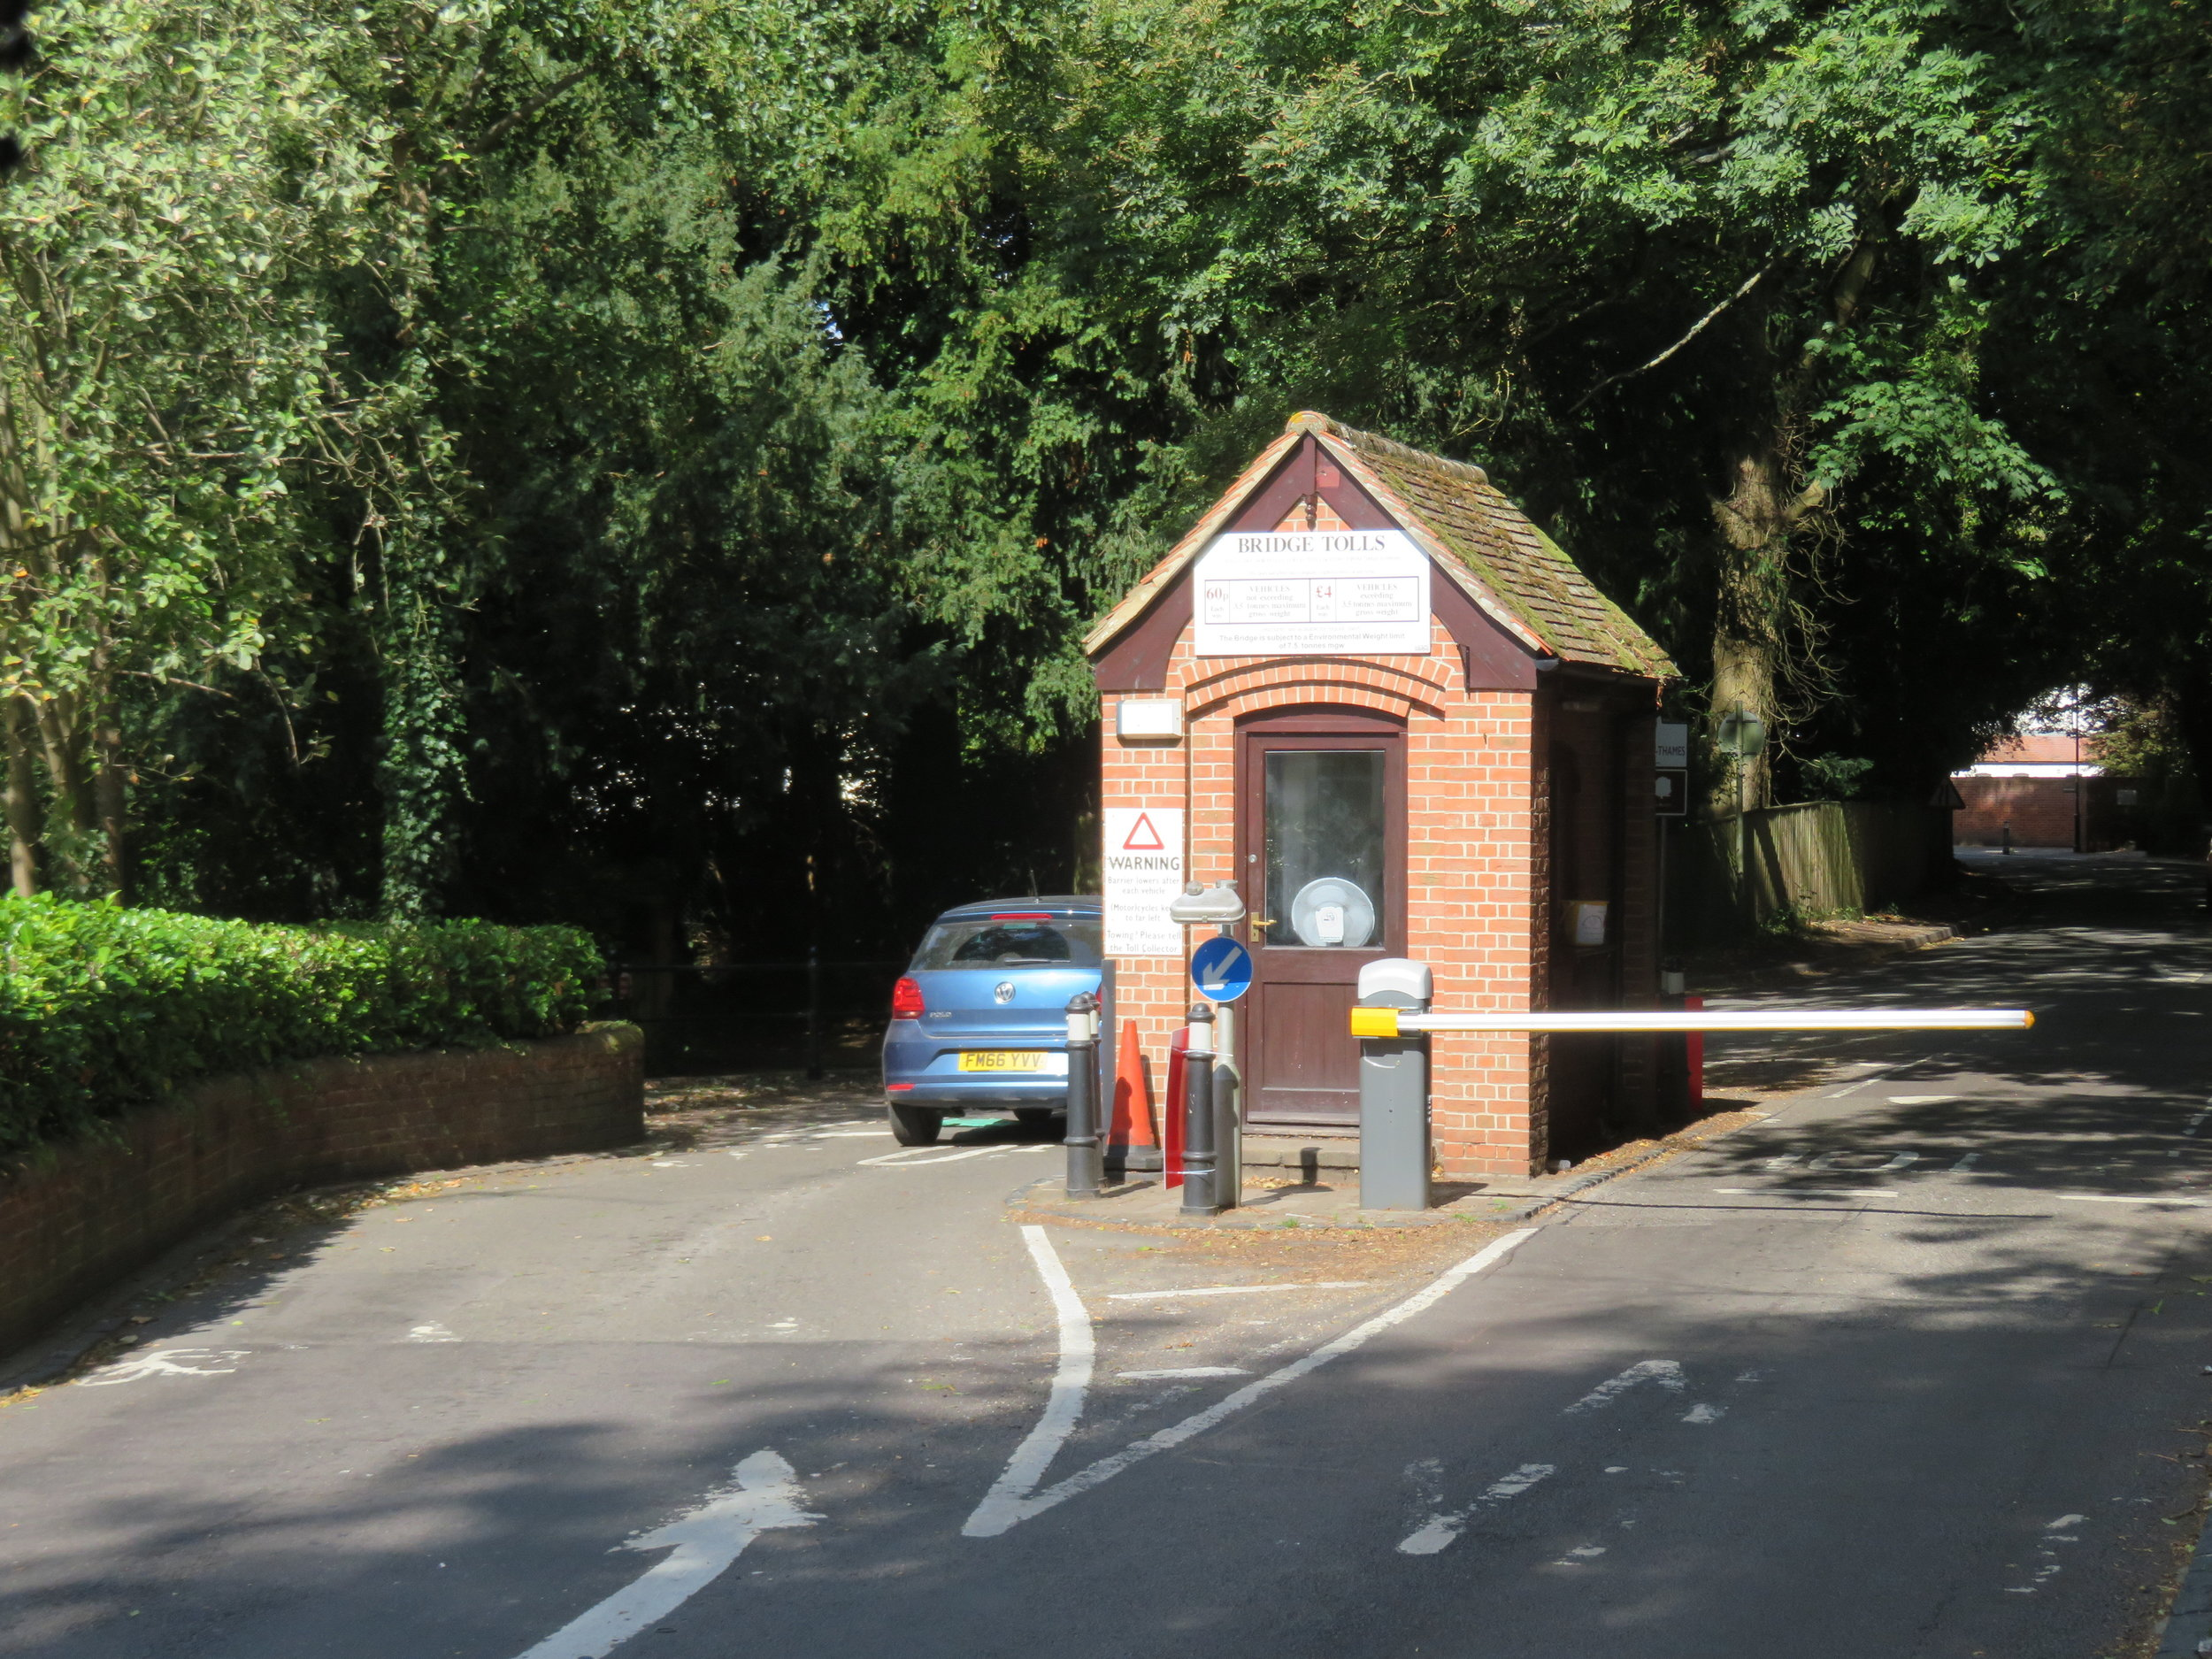 Pangborne toll booth